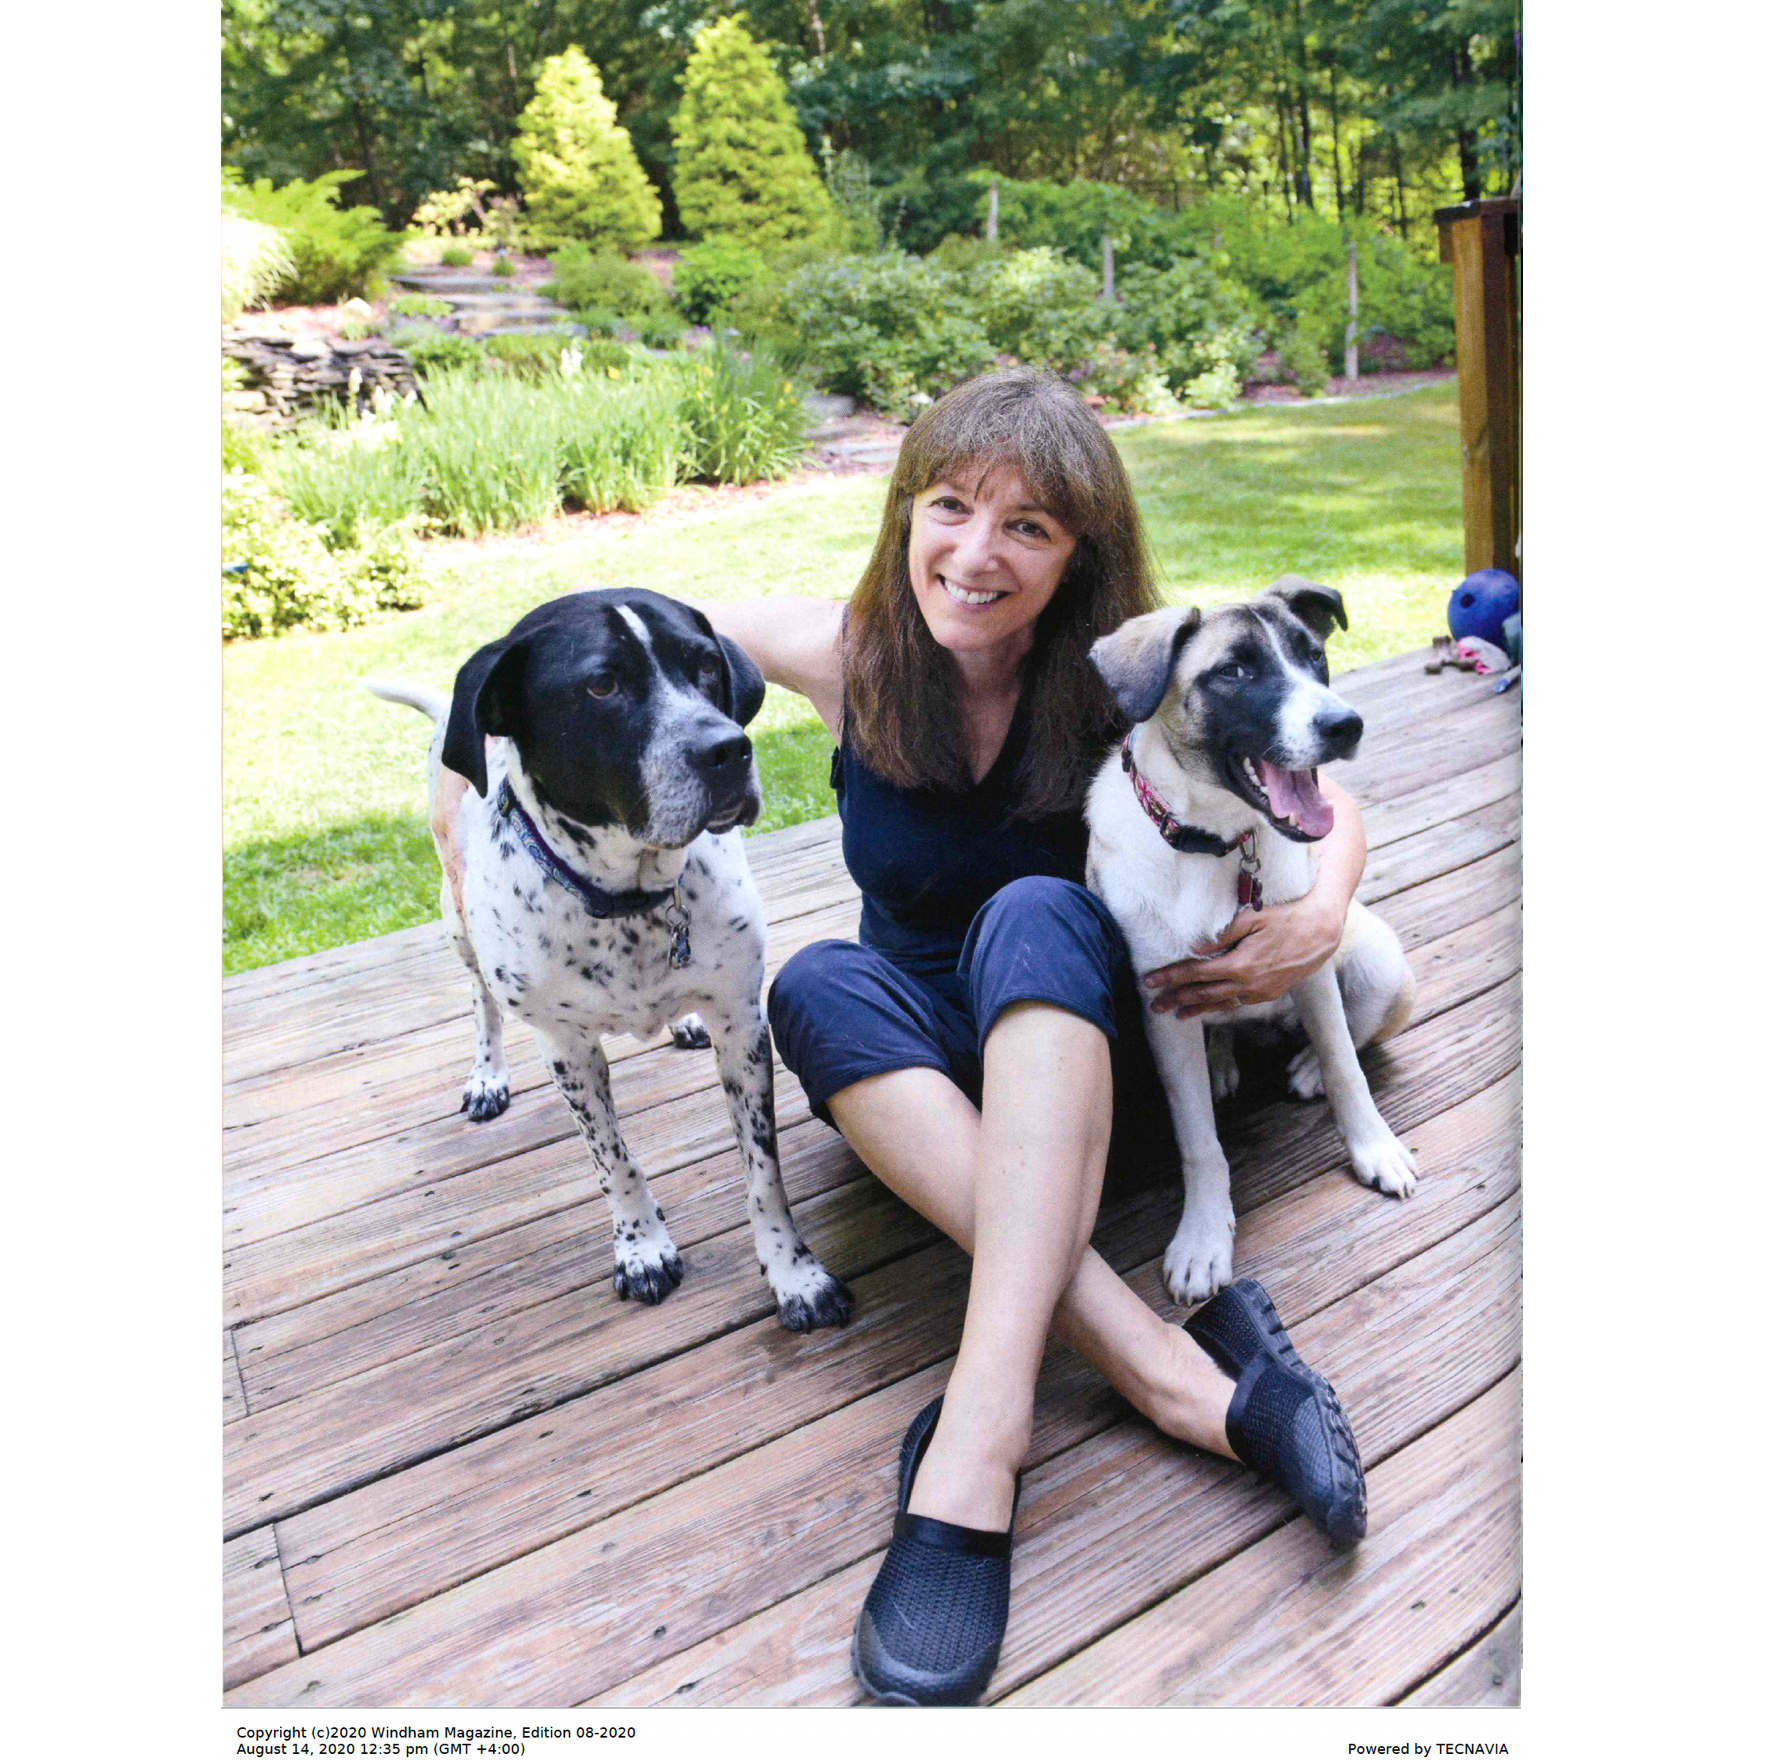 North of Boston Windham Magazine article on Good Paws page 1 of 4